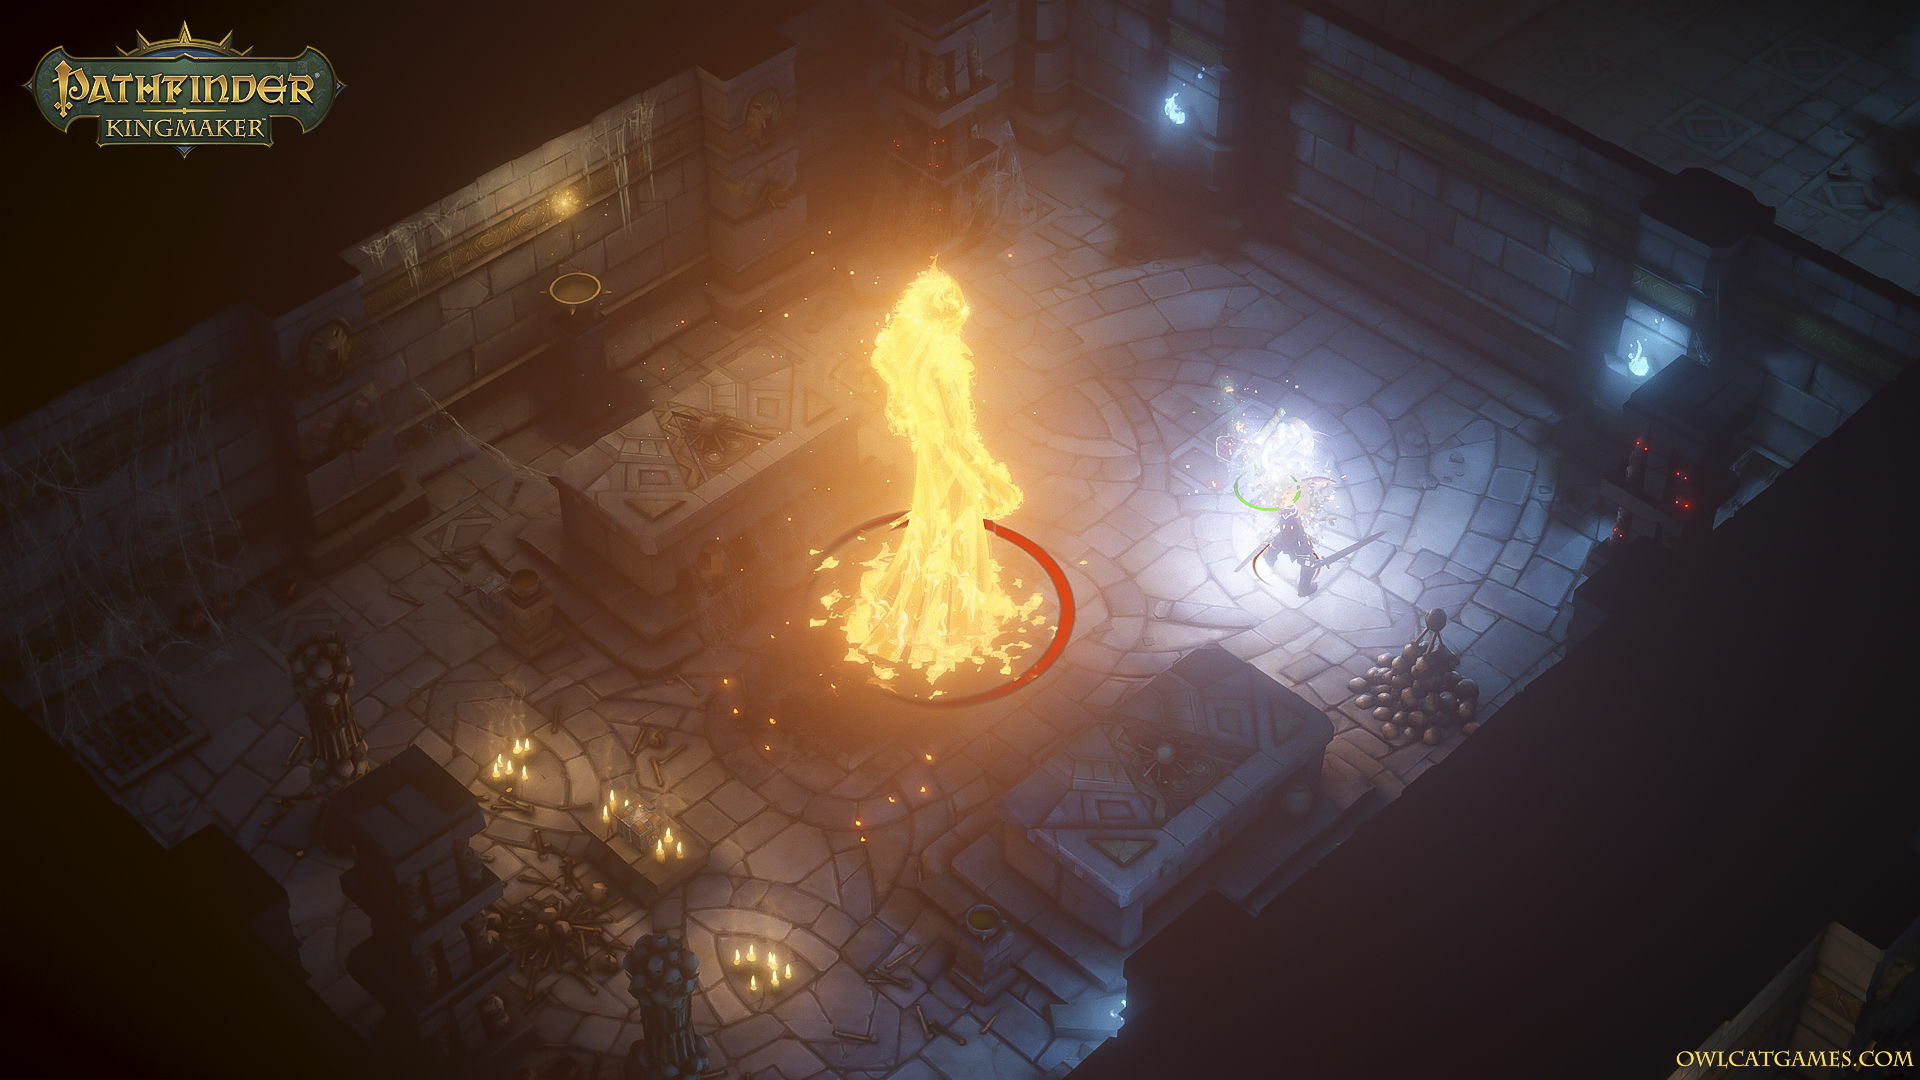 Pathfinder Kingmaker screenshot 1